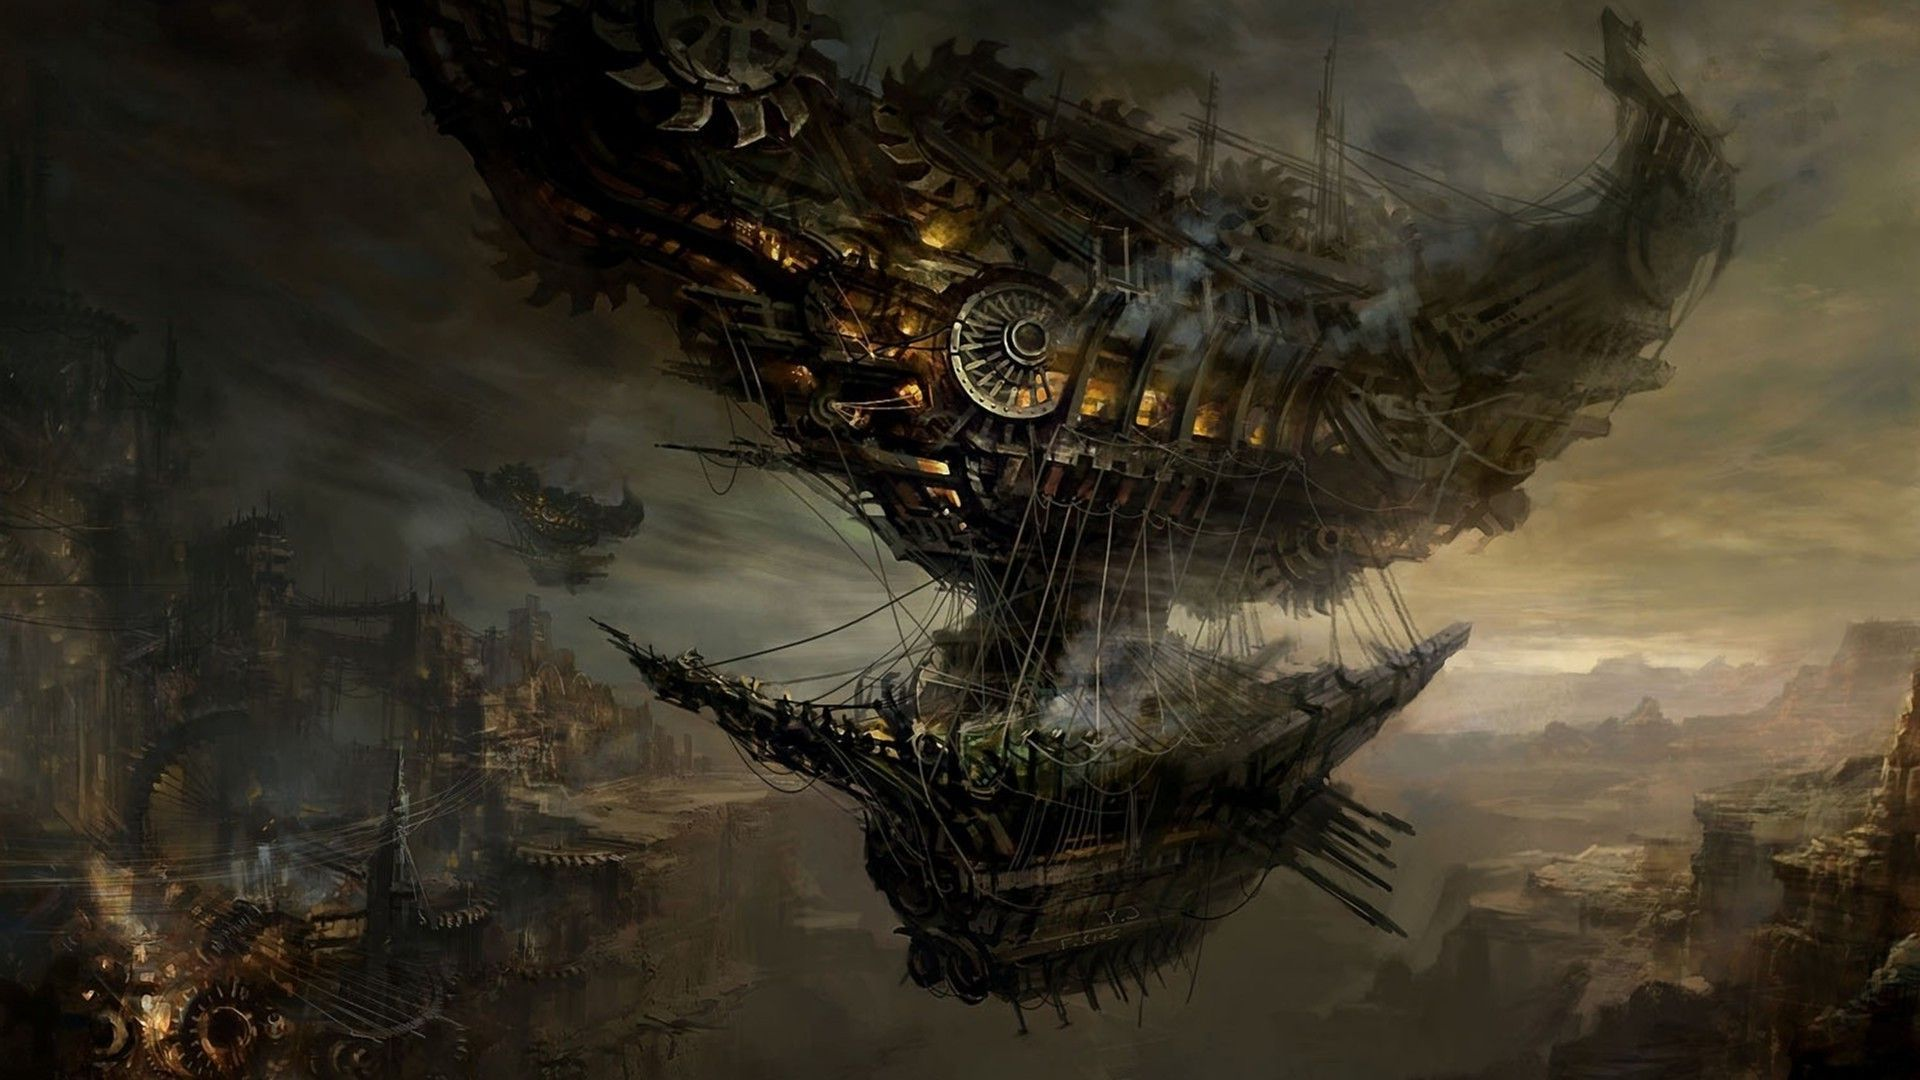 Steampunk wallpapers high quality download free for Sfondi 1920x1080